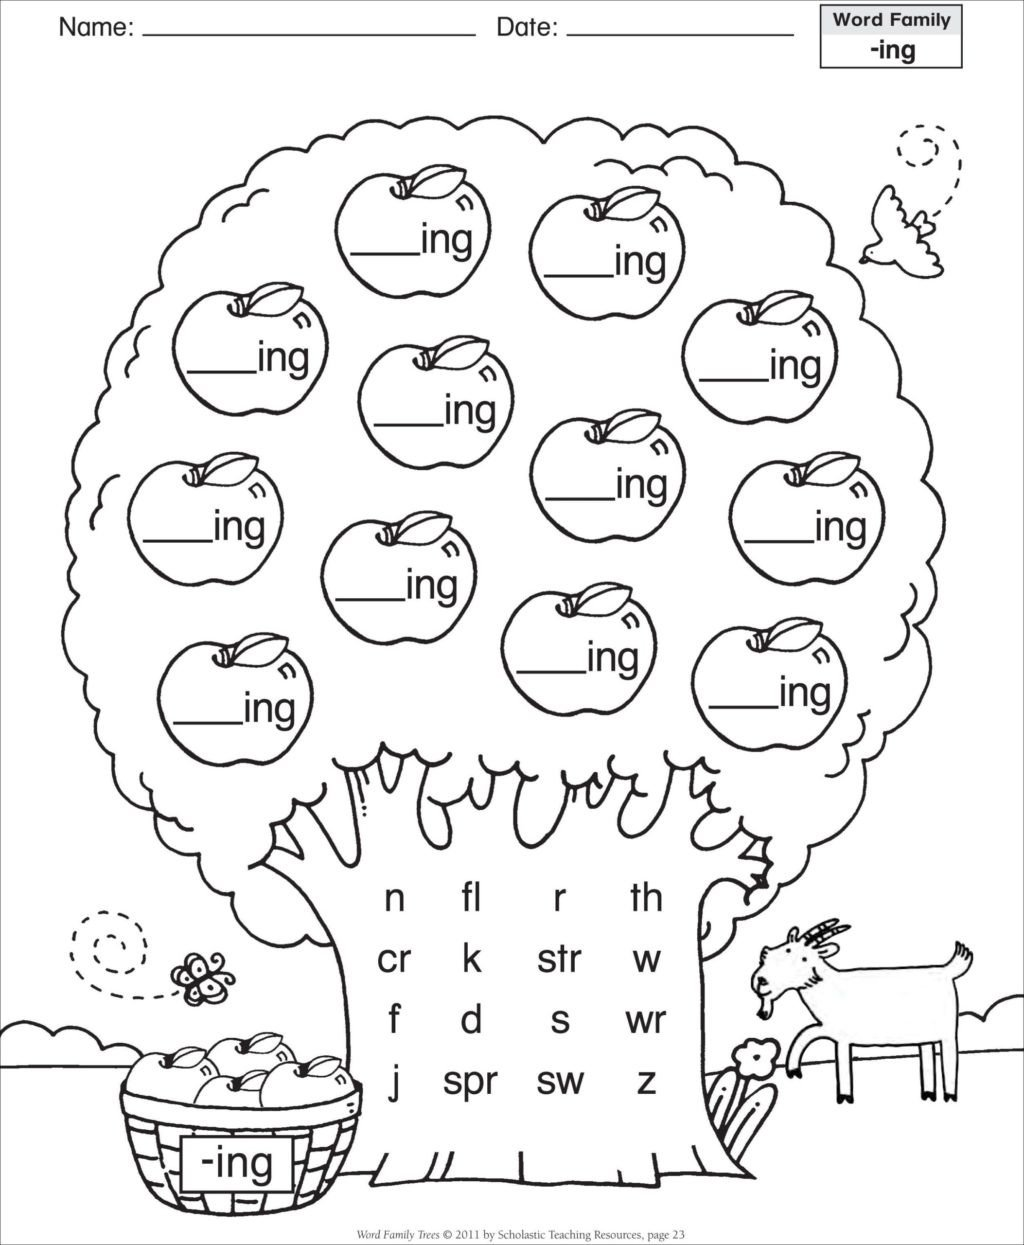 Th sound Worksheets Kindergarten Worksheet Worksheet Preschool English Worksheets